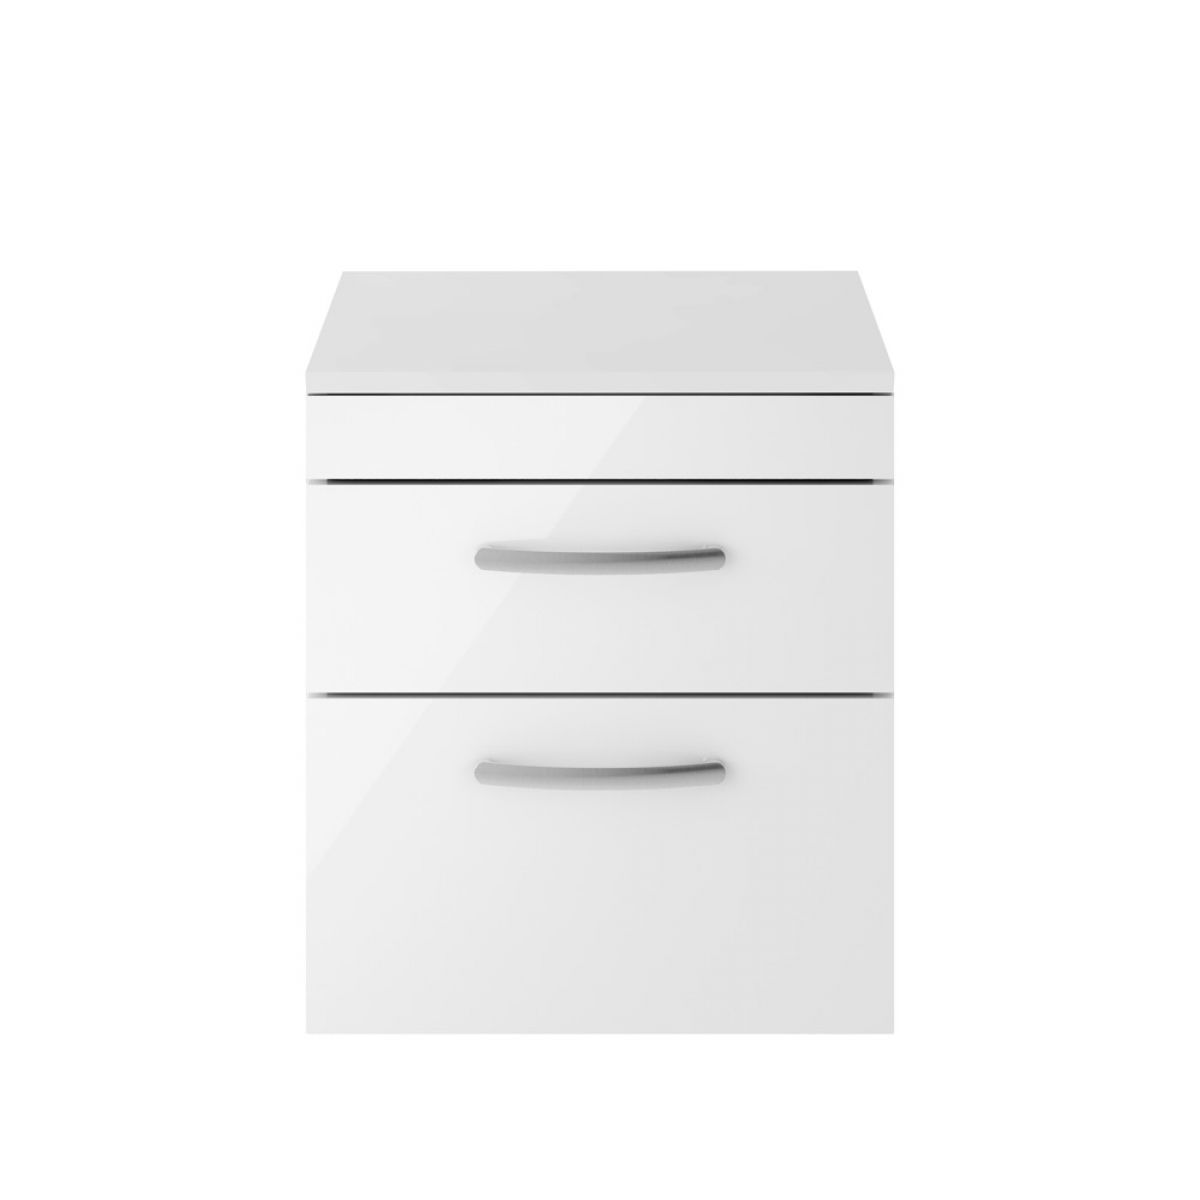 Premier Athena Gloss White 2 Drawer Wall Hung Vanity Unit 500mm with Worktop